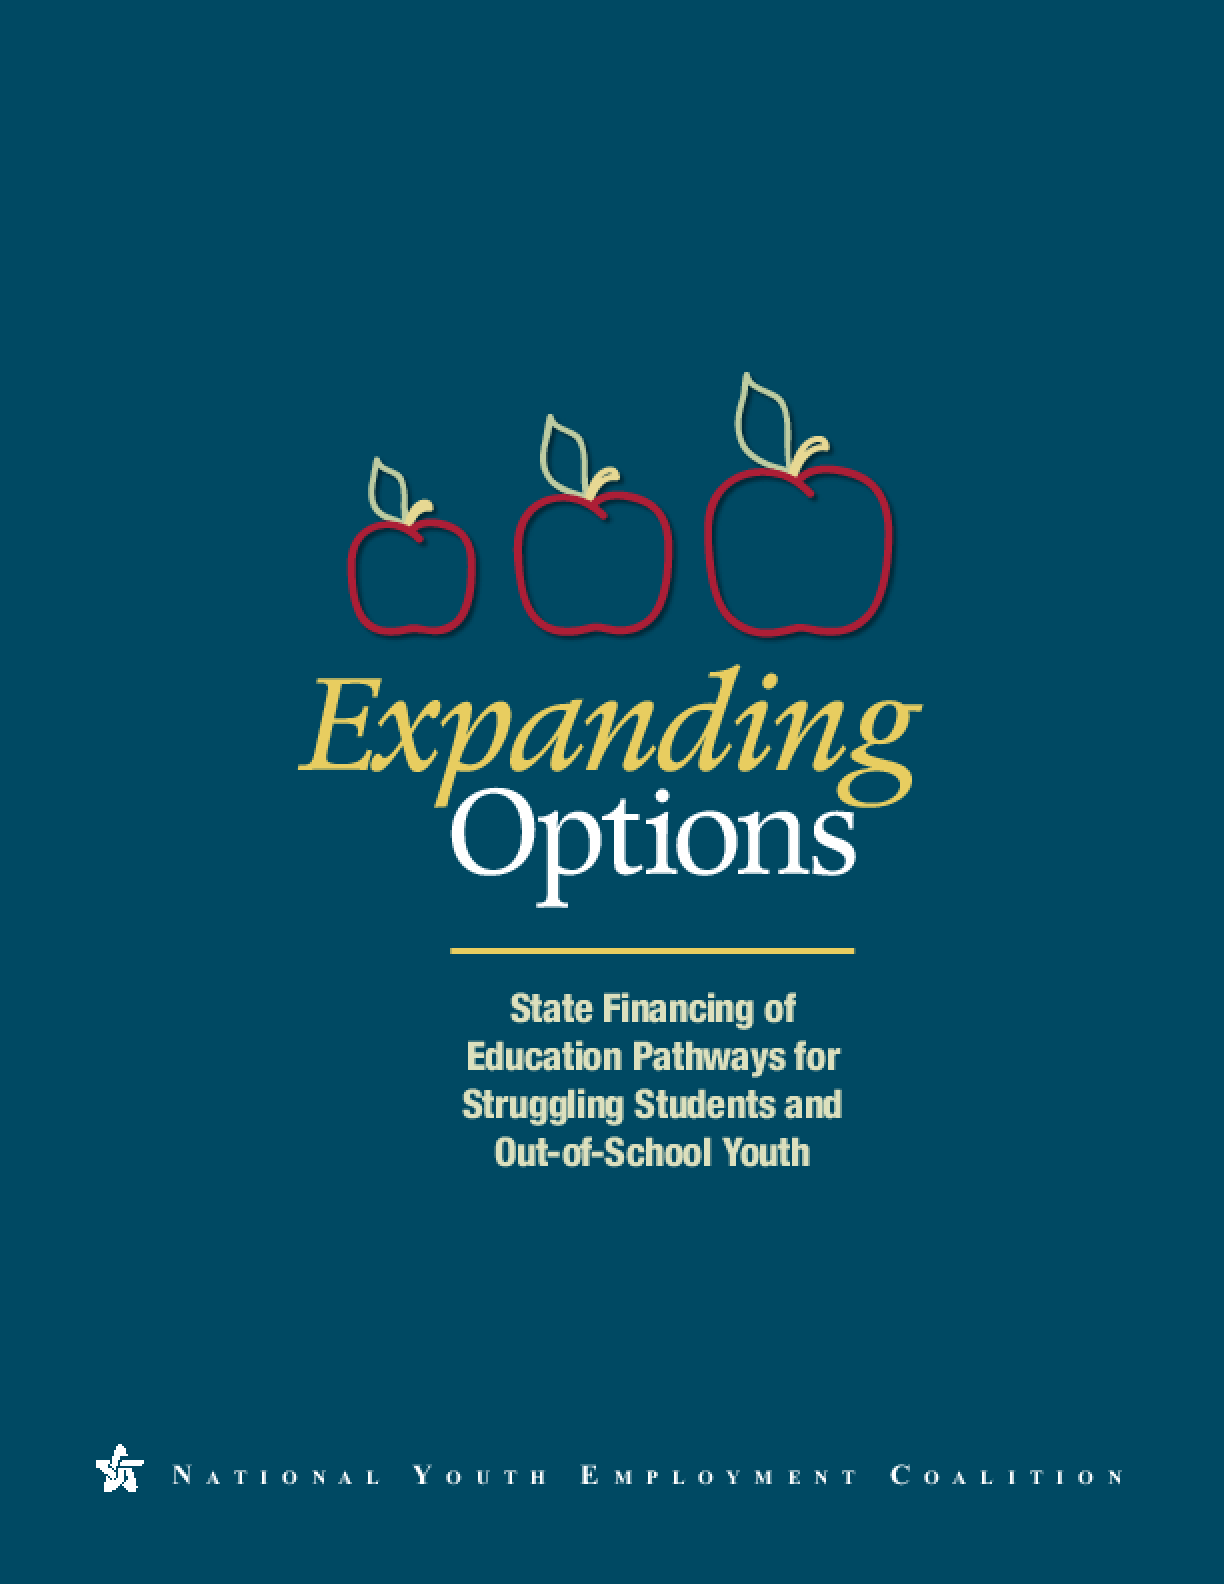 Expanding Options: State Financing of Education Pathways for Struggling Students and Out-of-School Youth - Massachusetts